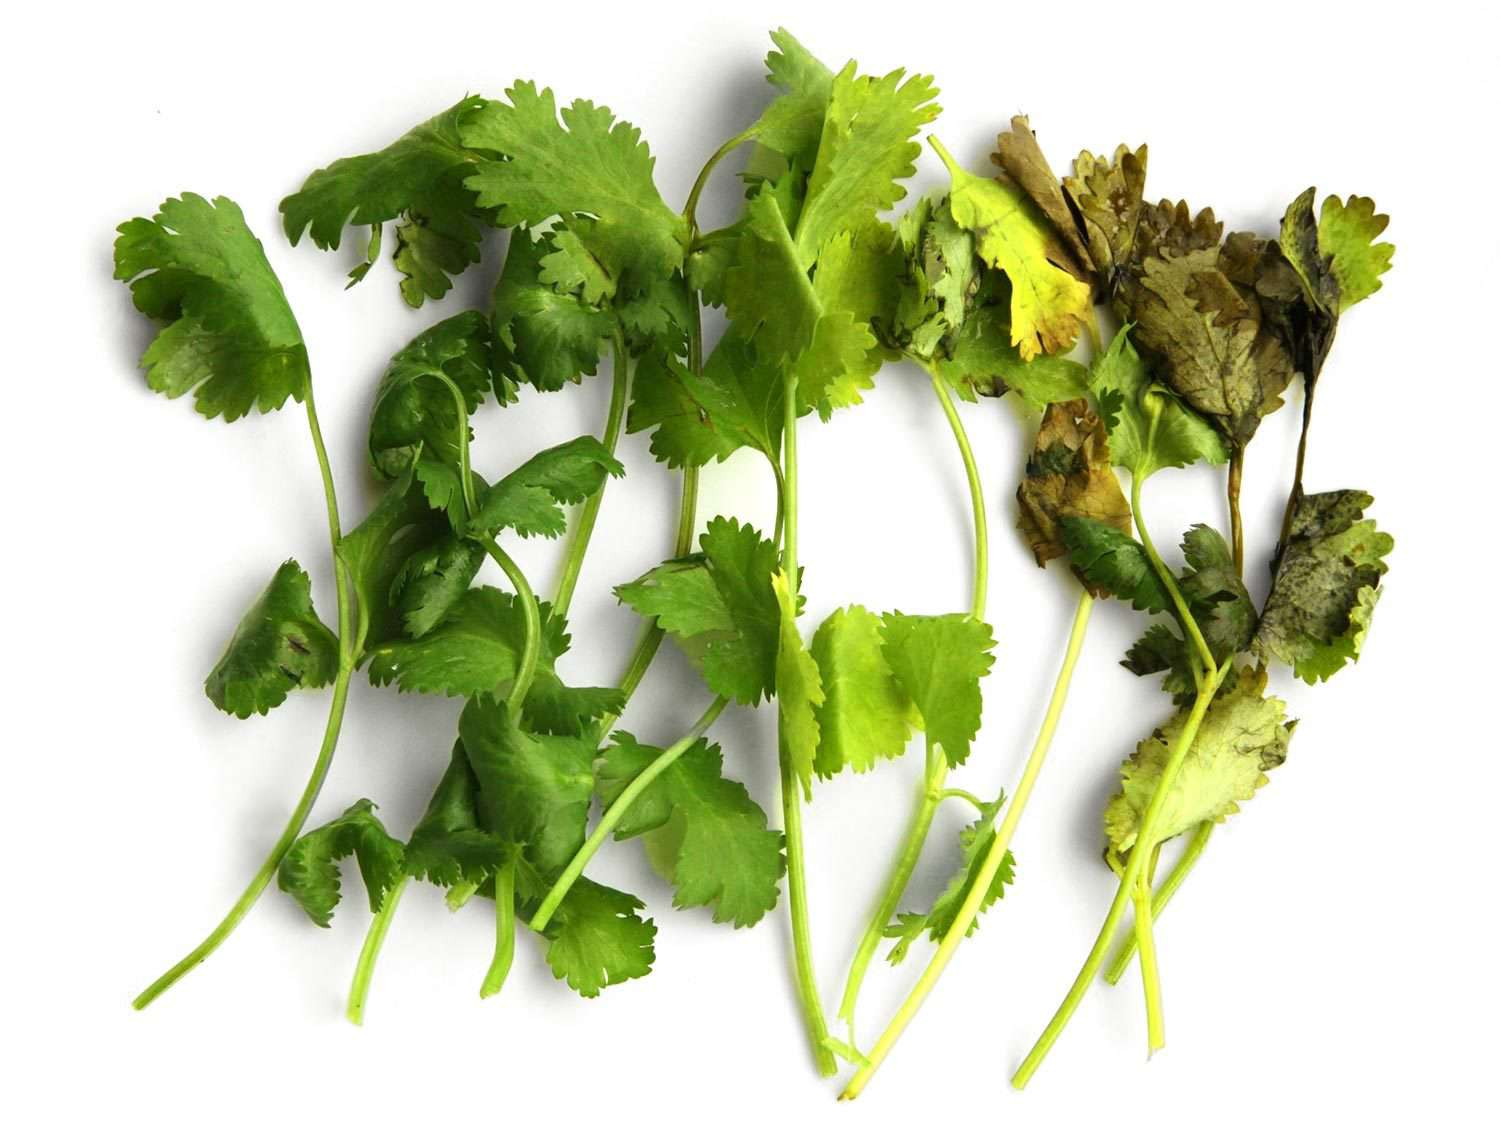 Sample stems of cilantro, ranging from very fresh and green to wilted and browned, stored in different ways